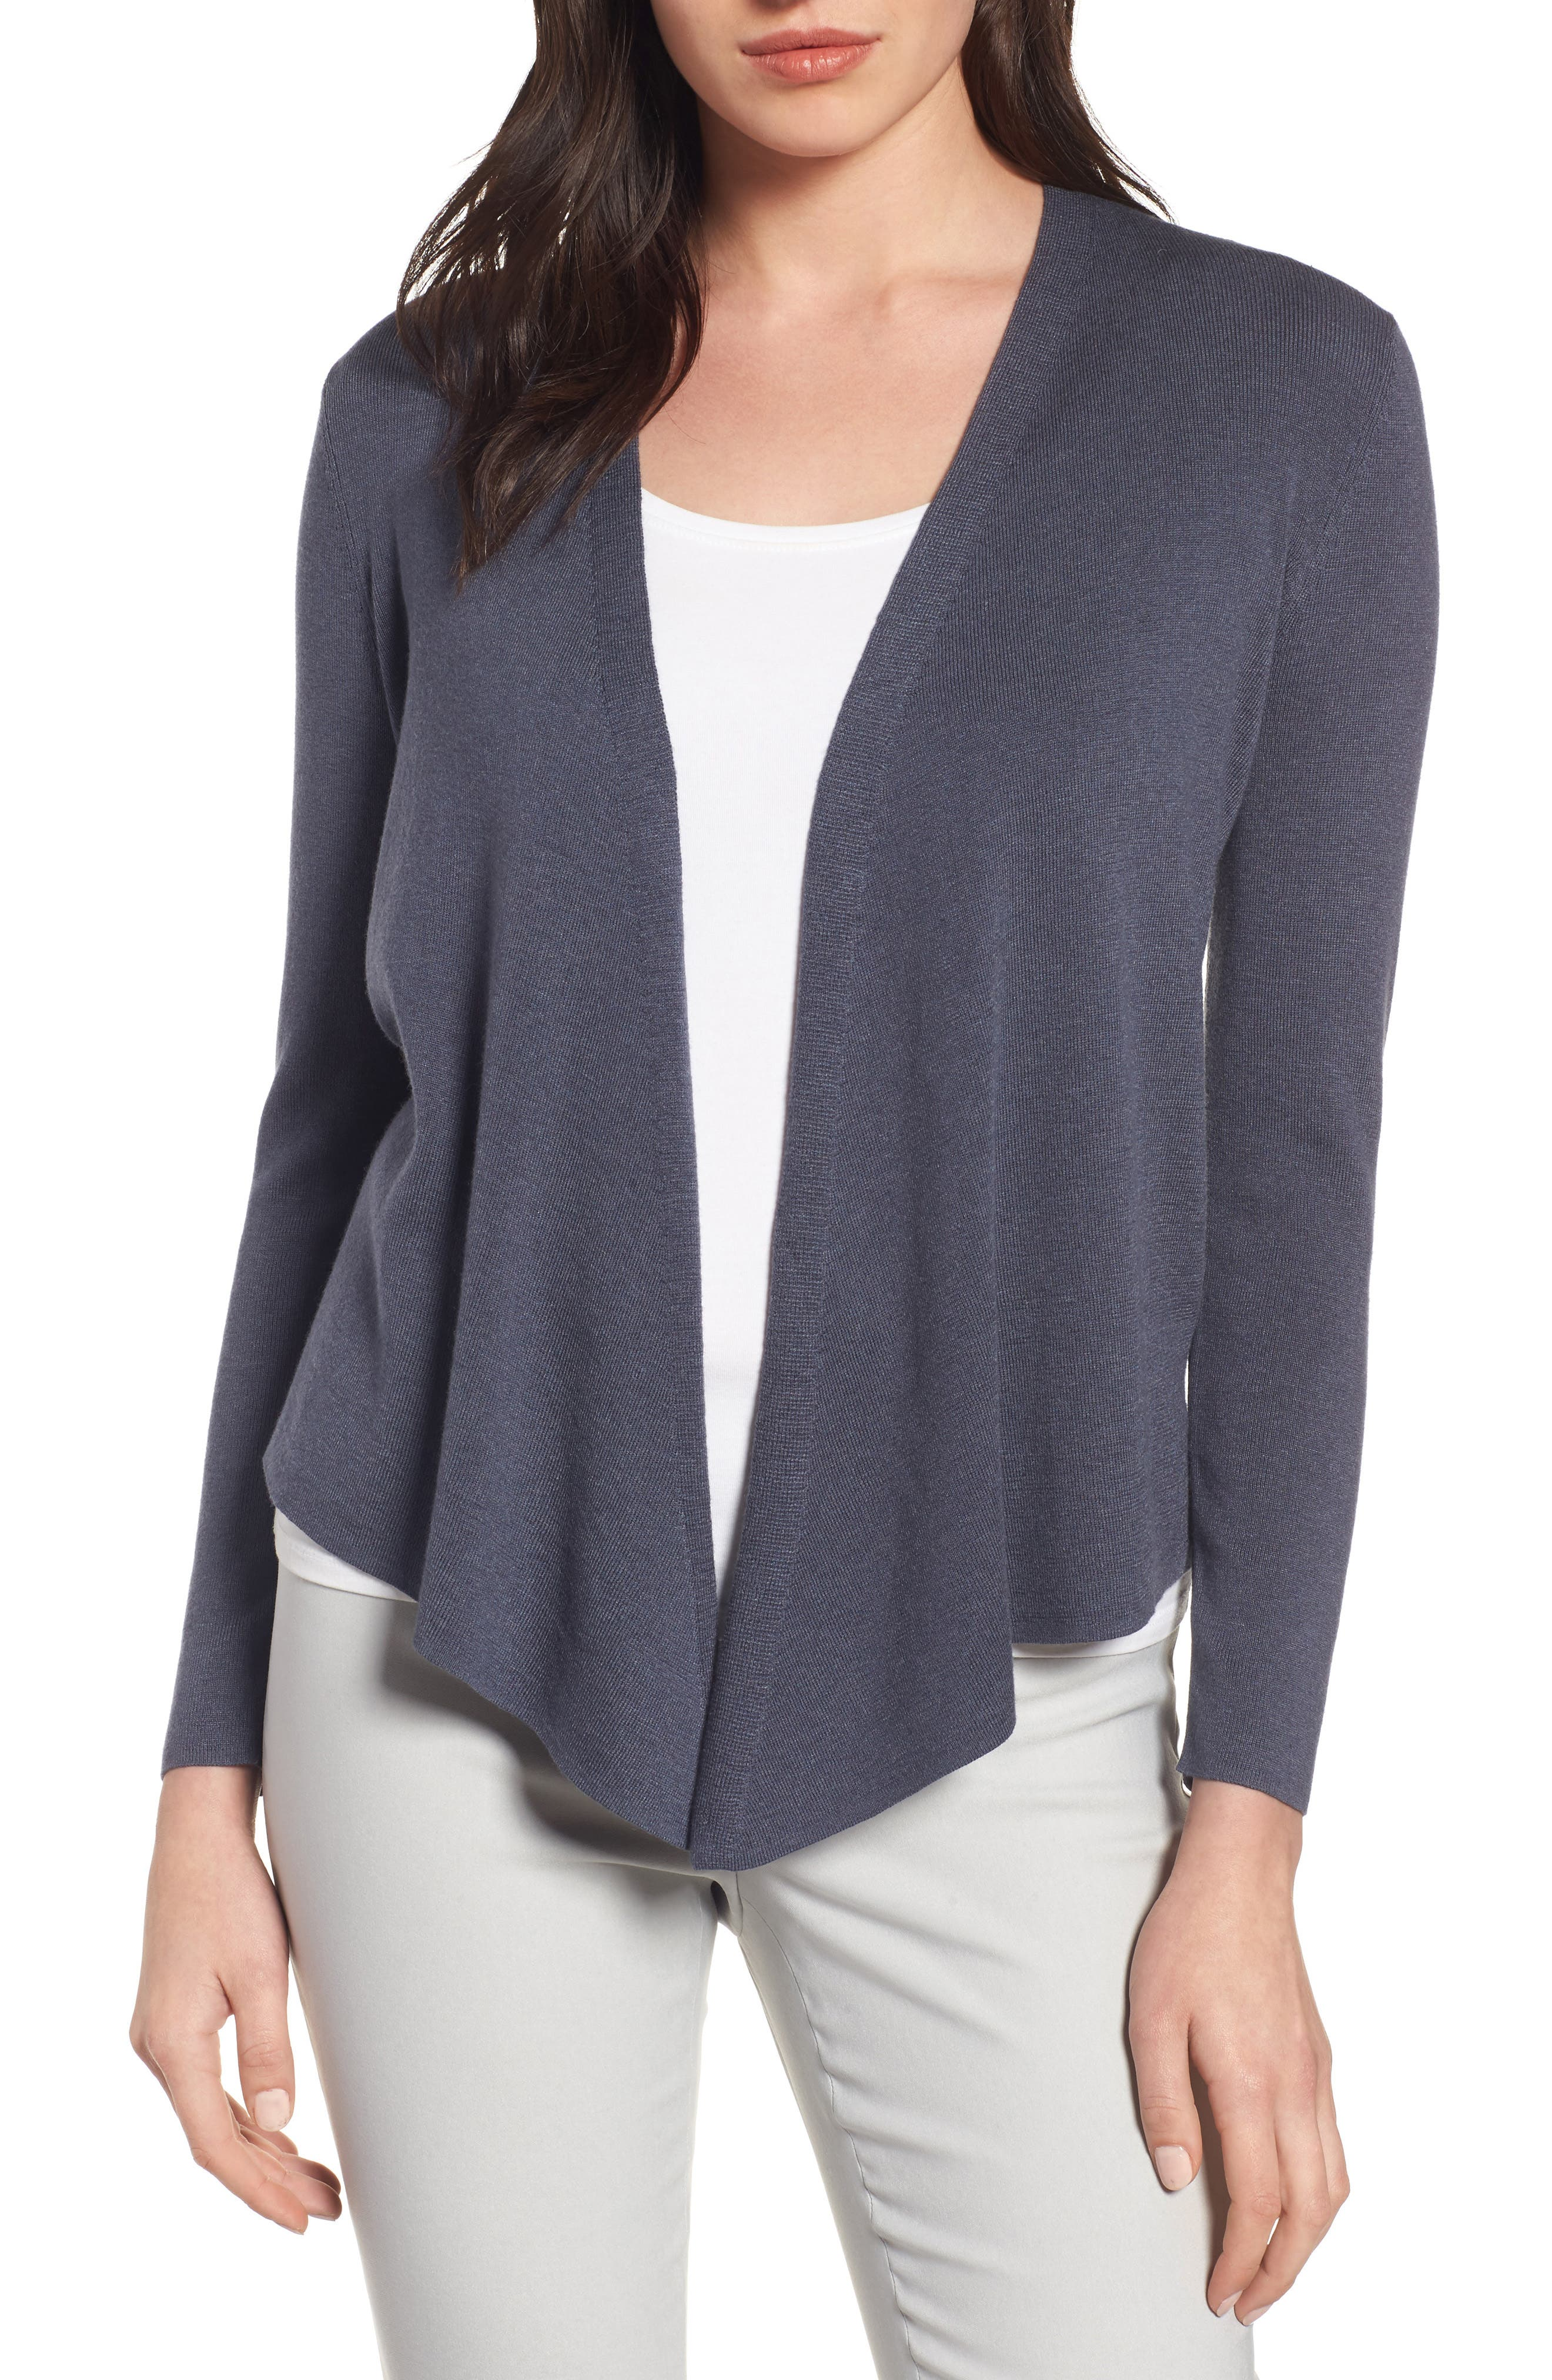 NIC+ZOE 4-Way Convertible Cardigan (Regular & Petite)